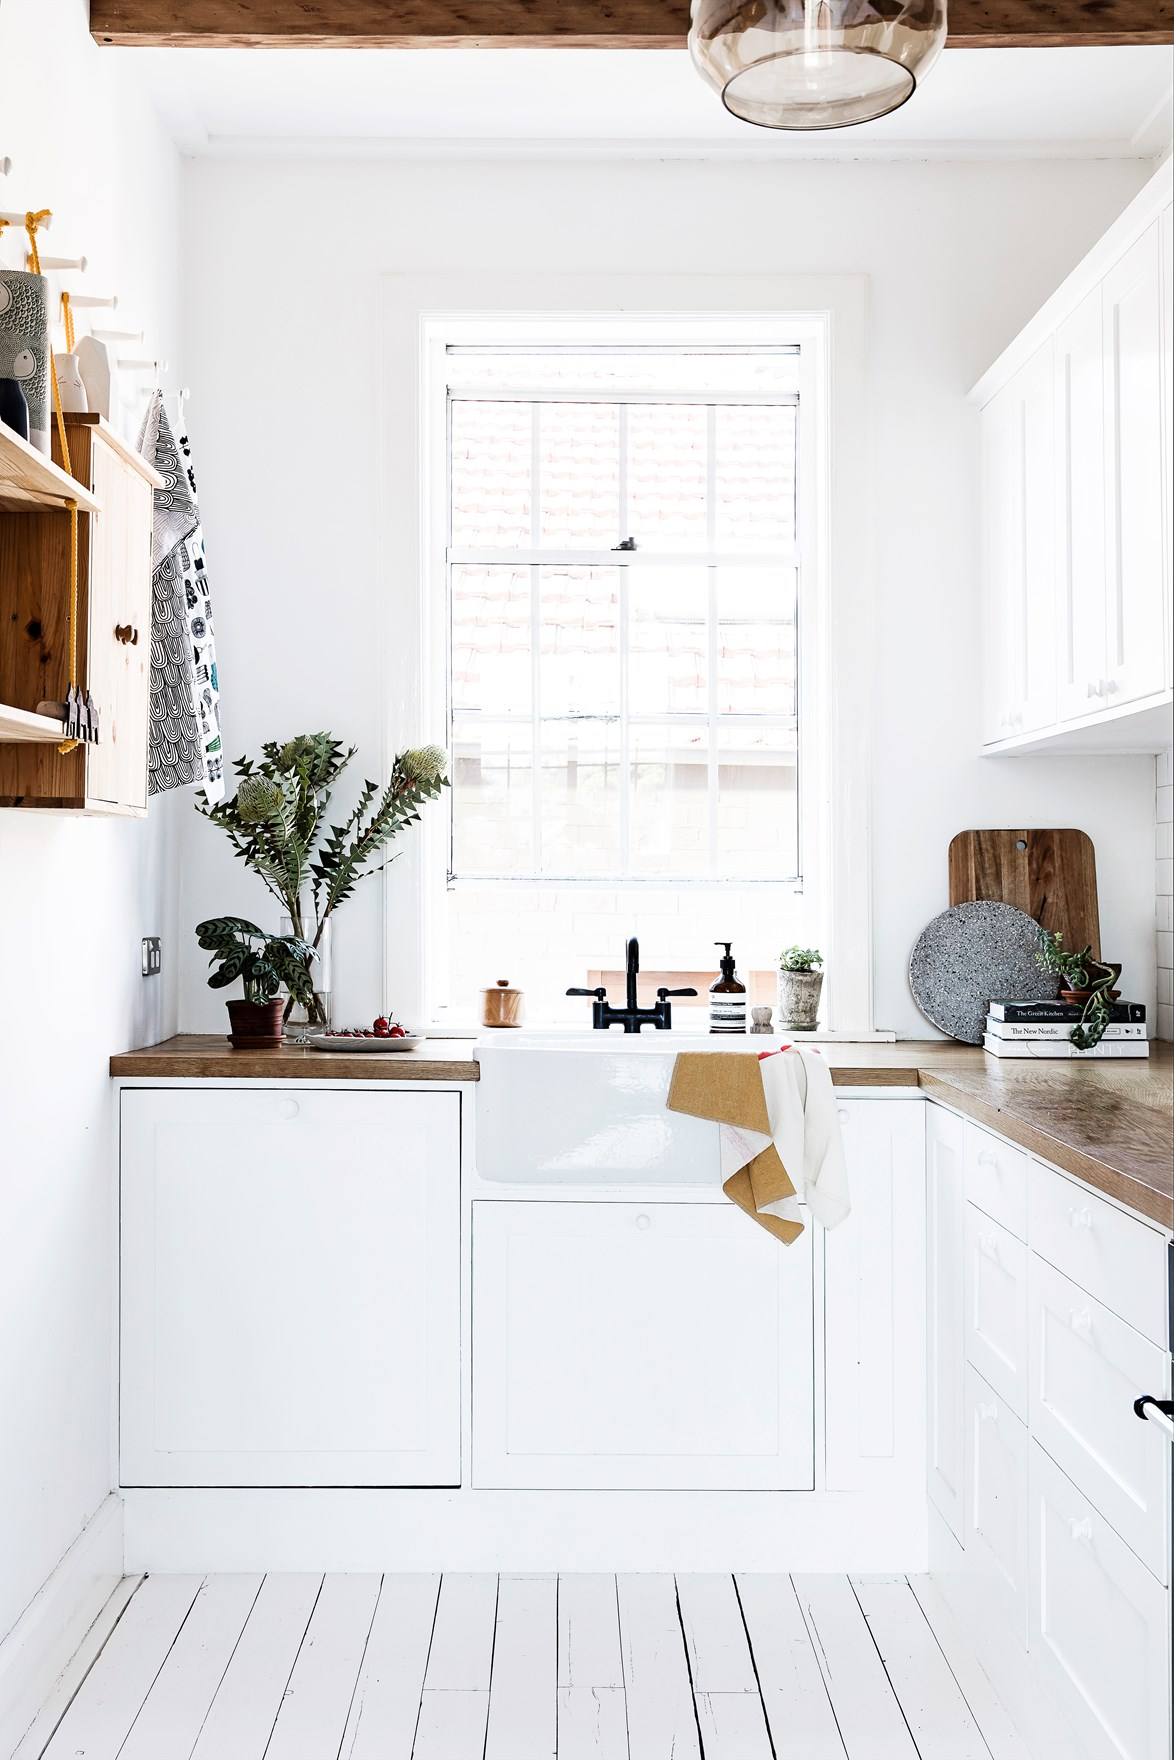 "[Painting the floorboards](https://www.homestolove.com.au/how-to-paint-a-floor-10126|target=""_blank"") white has helped to create a relaxed coastal feel in this [Sydney apartment](https://www.homestolove.com.au/sydney-apartment-gets-swedish-summer-house-makeover-3050